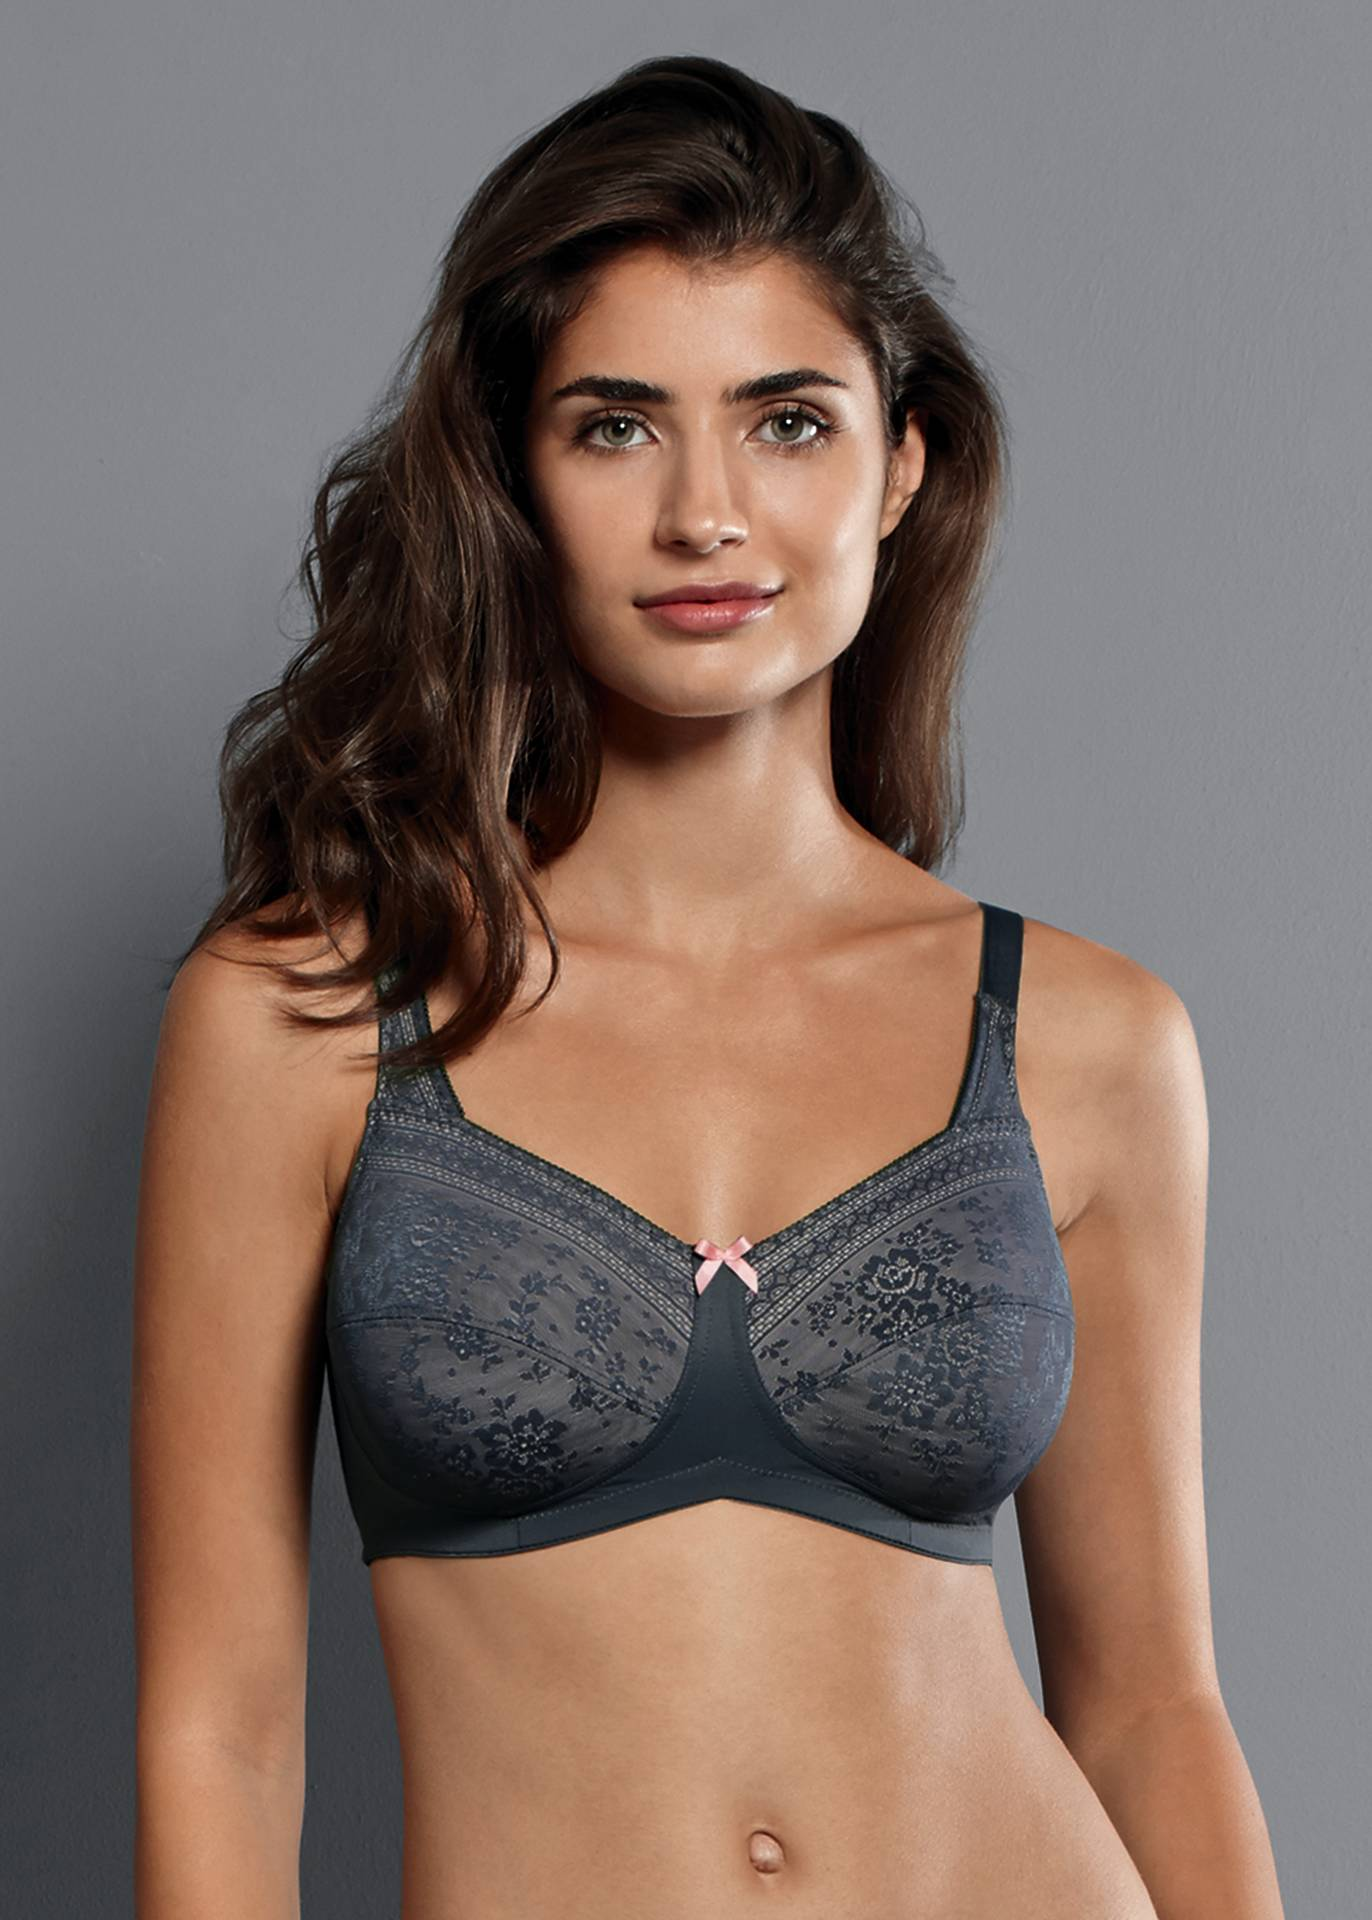 Anita Care Fleur Wire Free Mastectomy Bra - Anthracite 5754X (2-3 weeks for delivery)